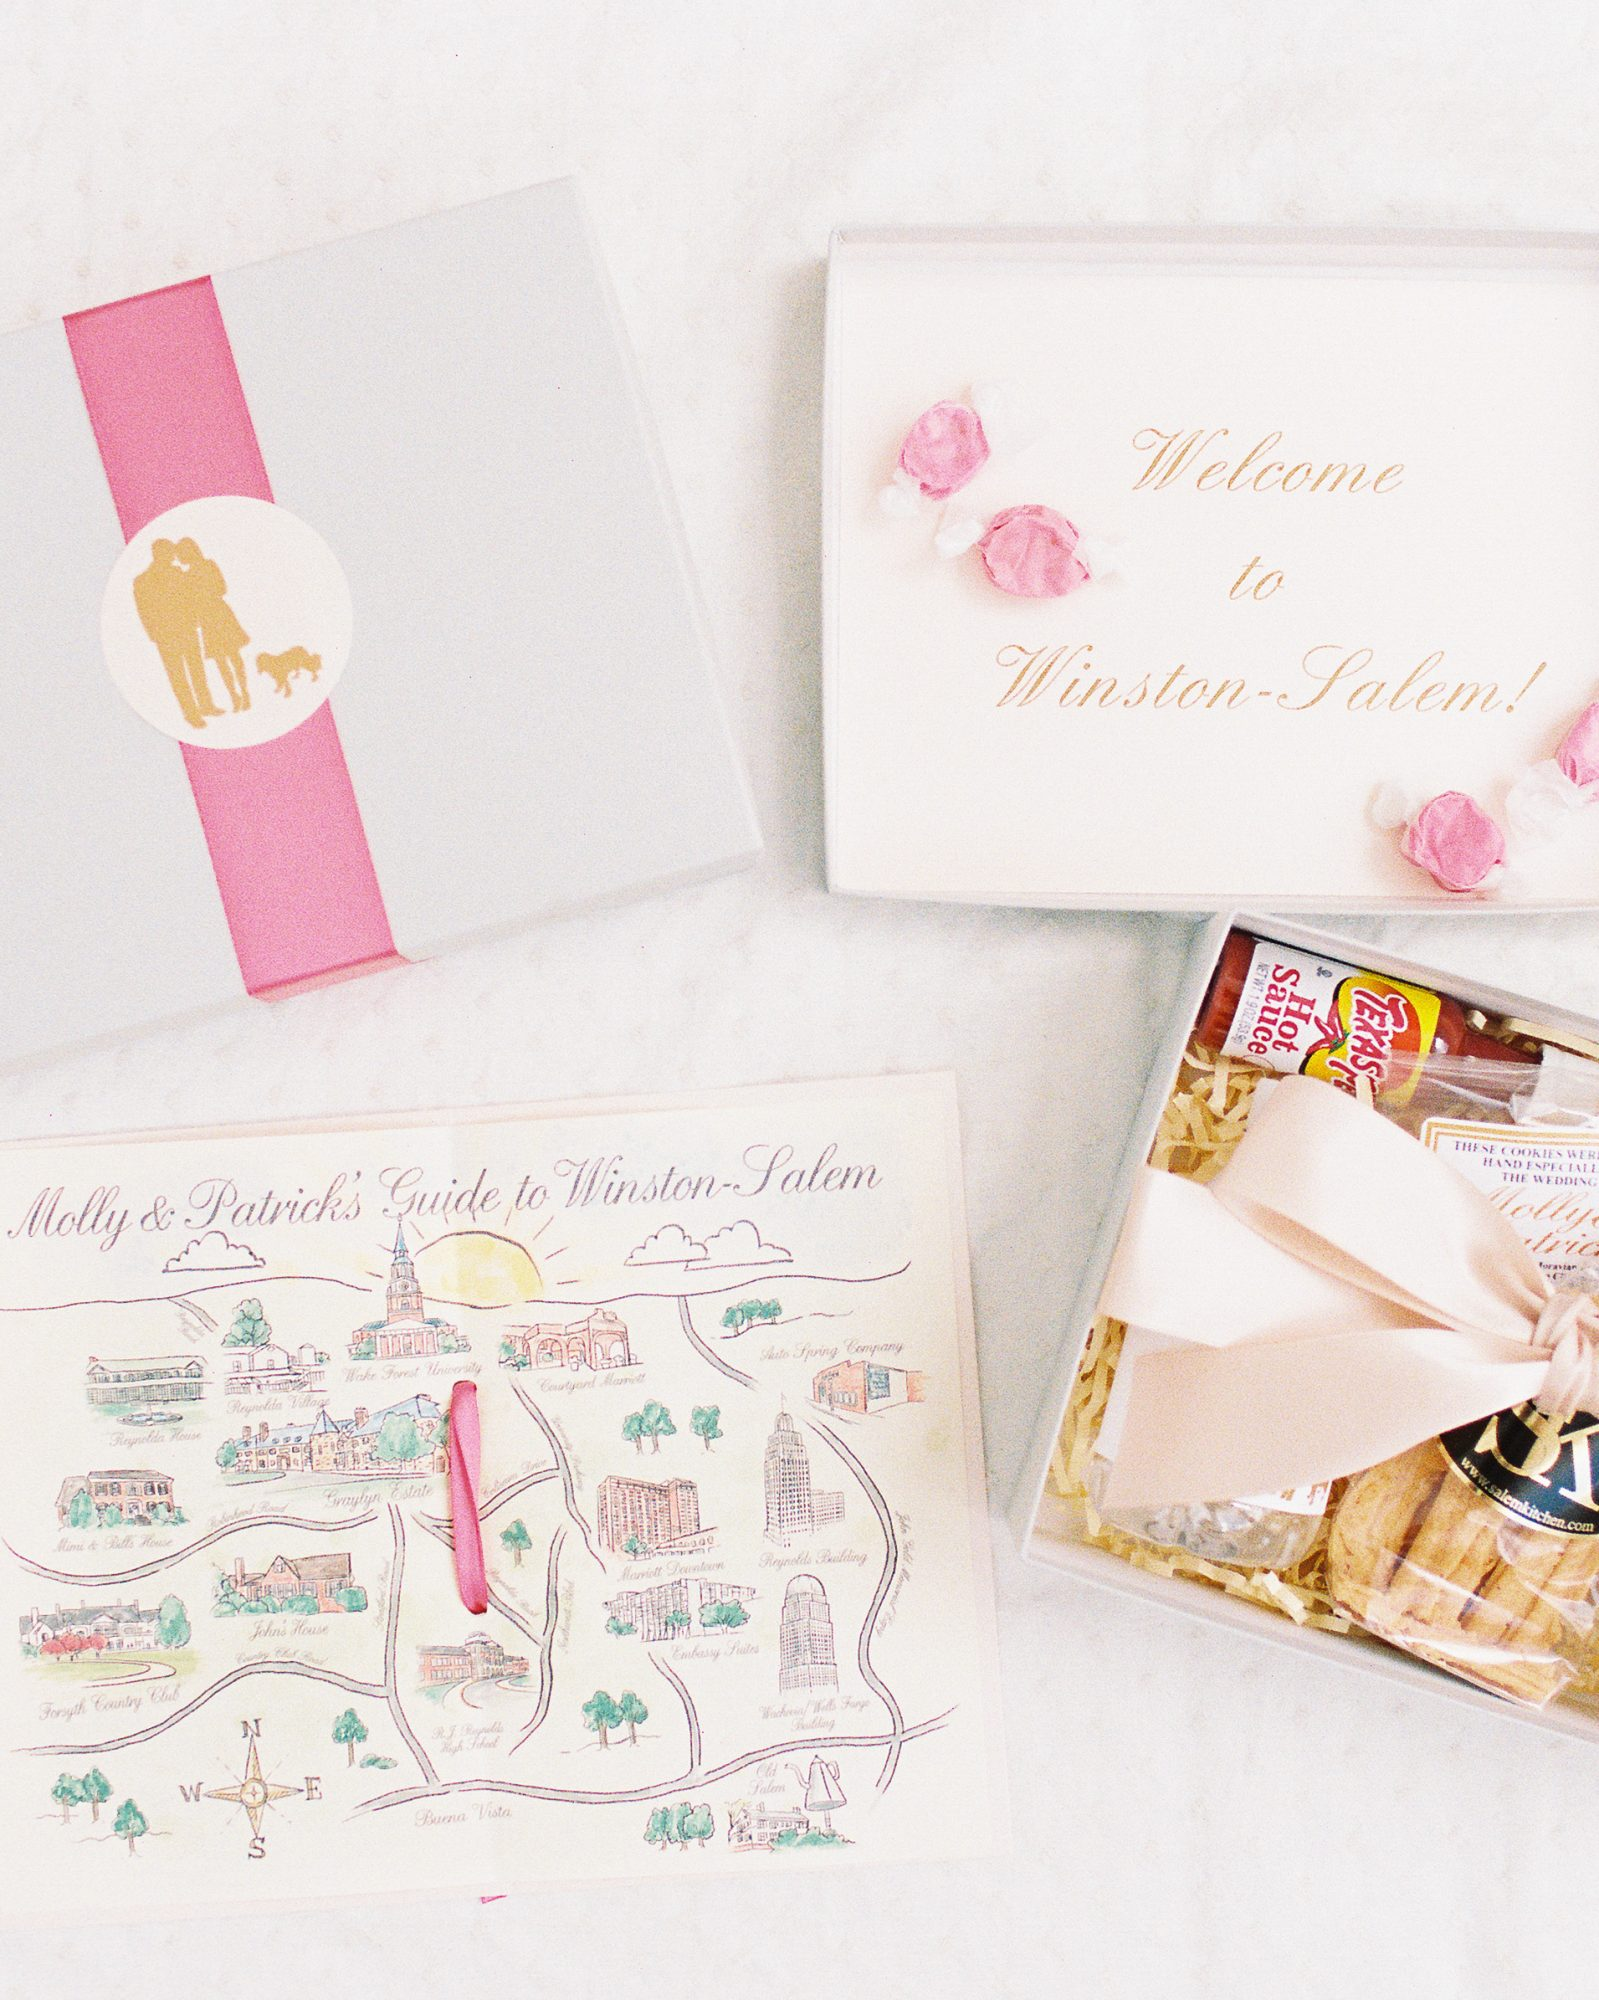 molly-patrick-wedding-welcomebox-3075-s111760-0115.jpg